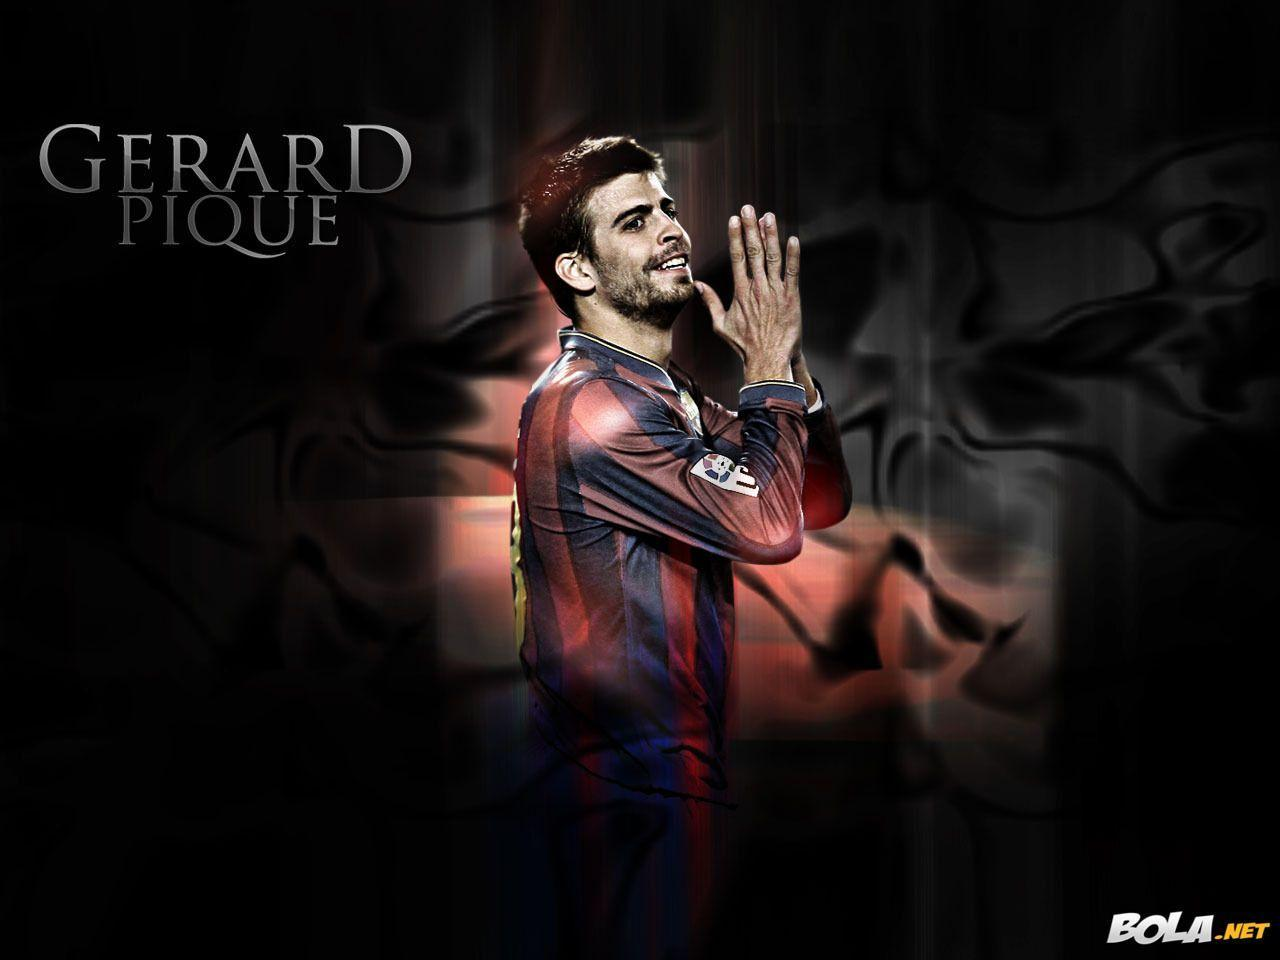 Gerard Pique Football Wallpapers